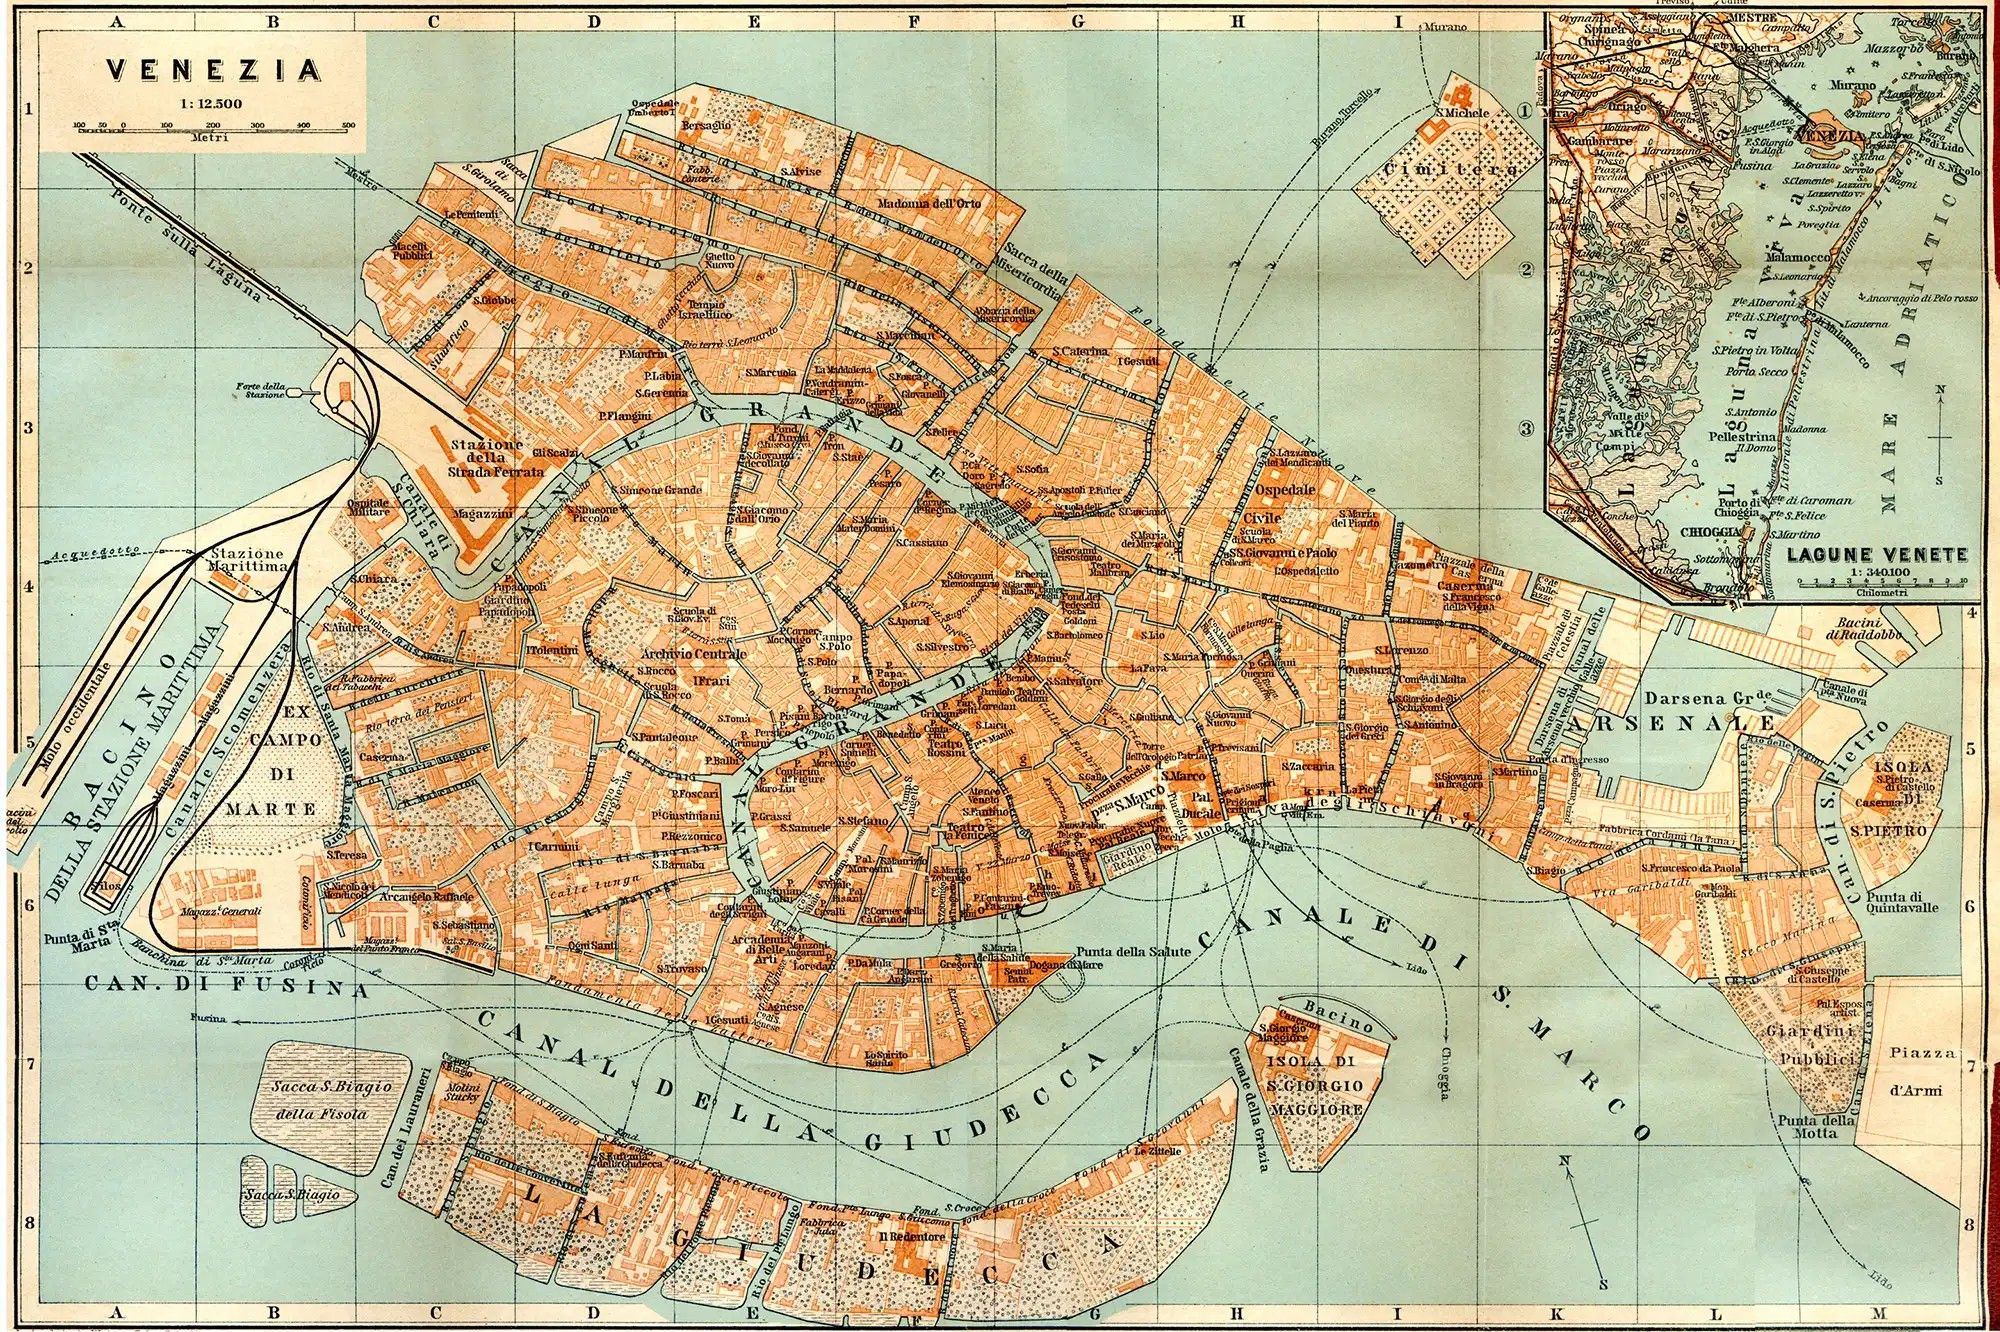 Pin by Rich Ramrod on Maps | Venice map, Antique maps ...